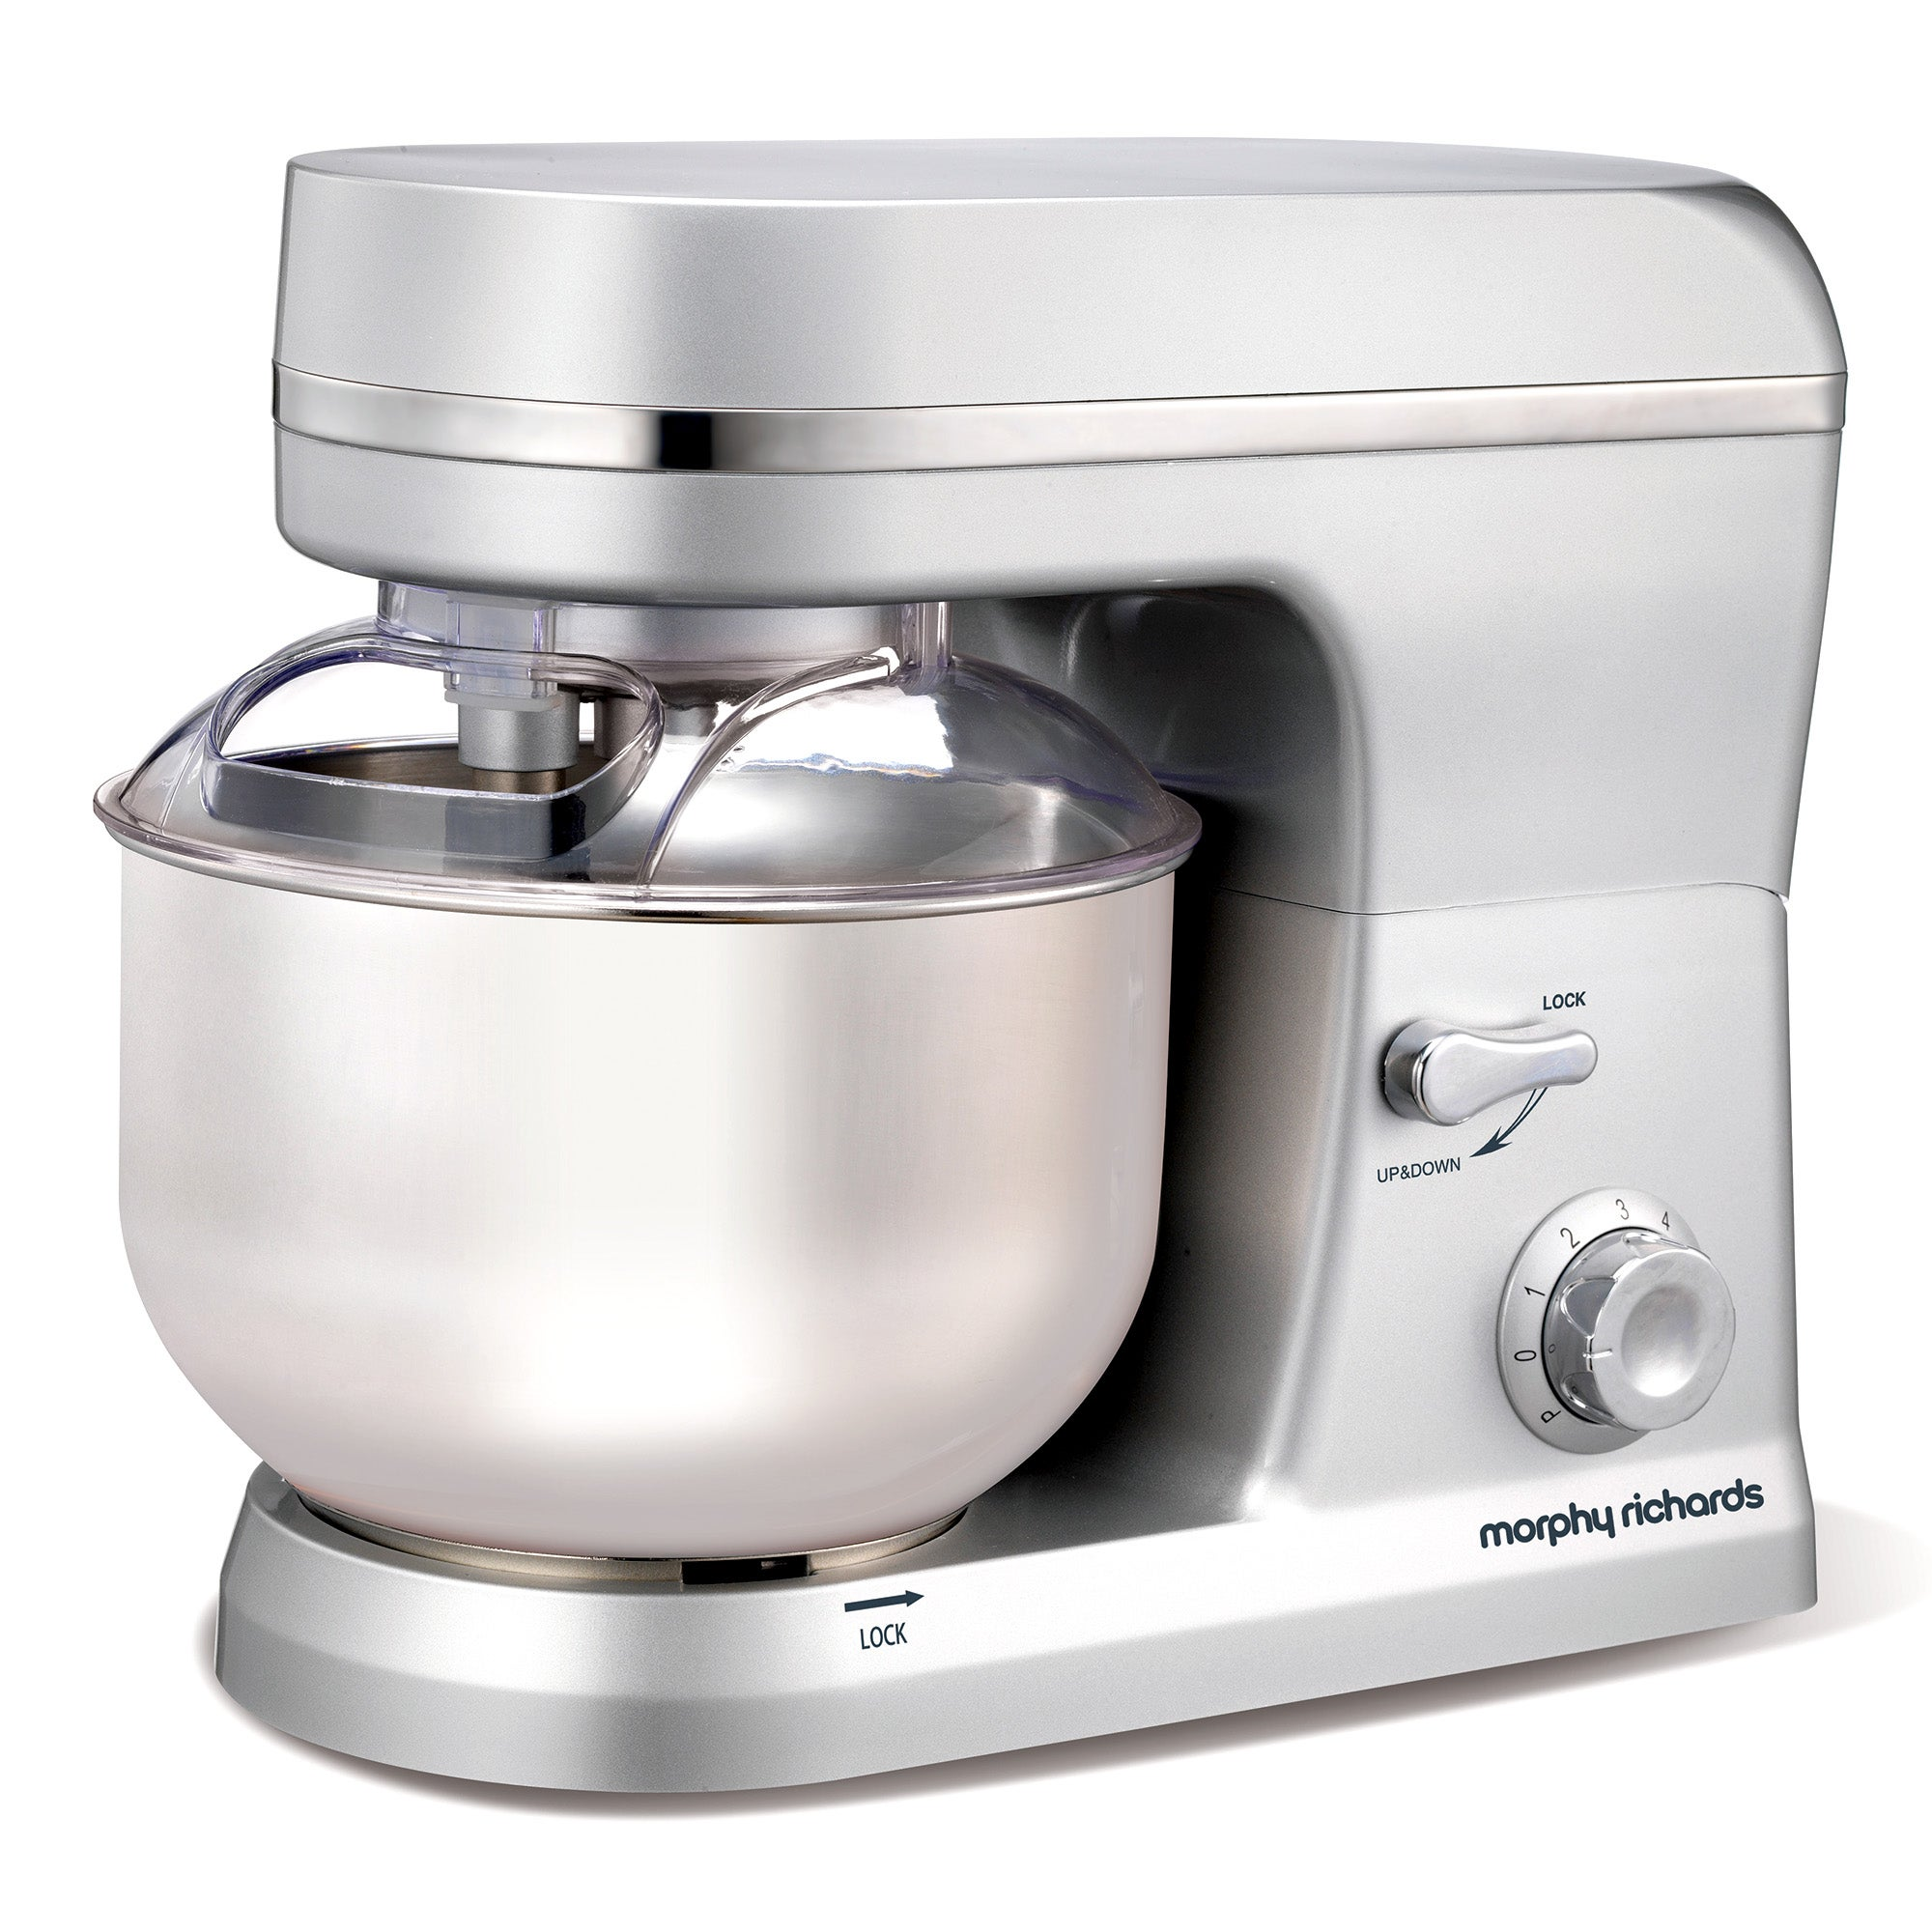 Morphy Richards Accents 400006 Silver Stand Mixer